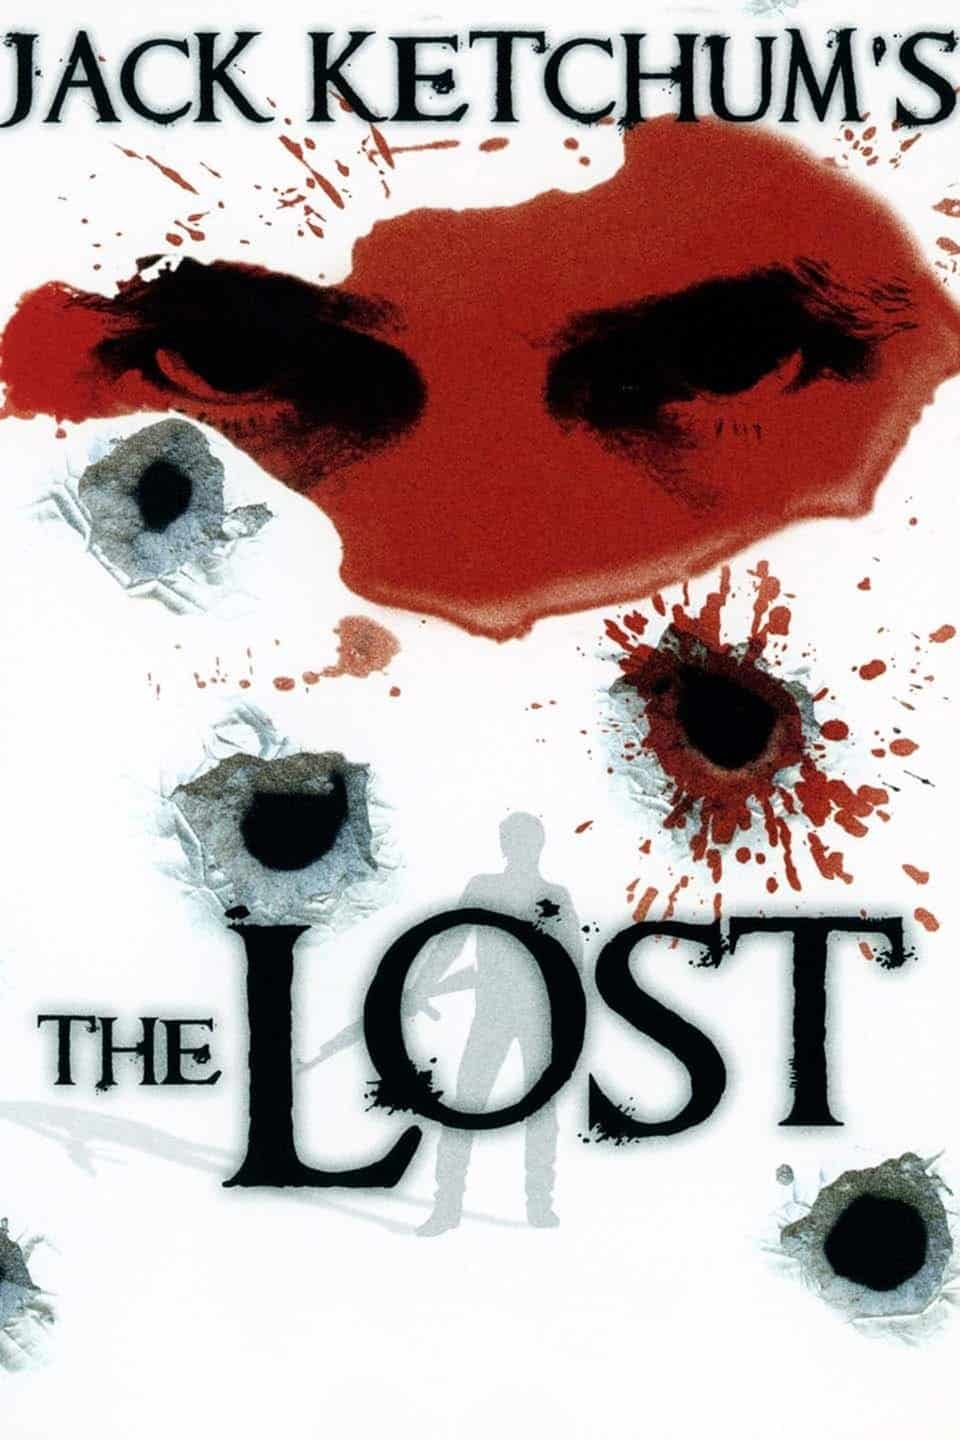 The Lost, 2006